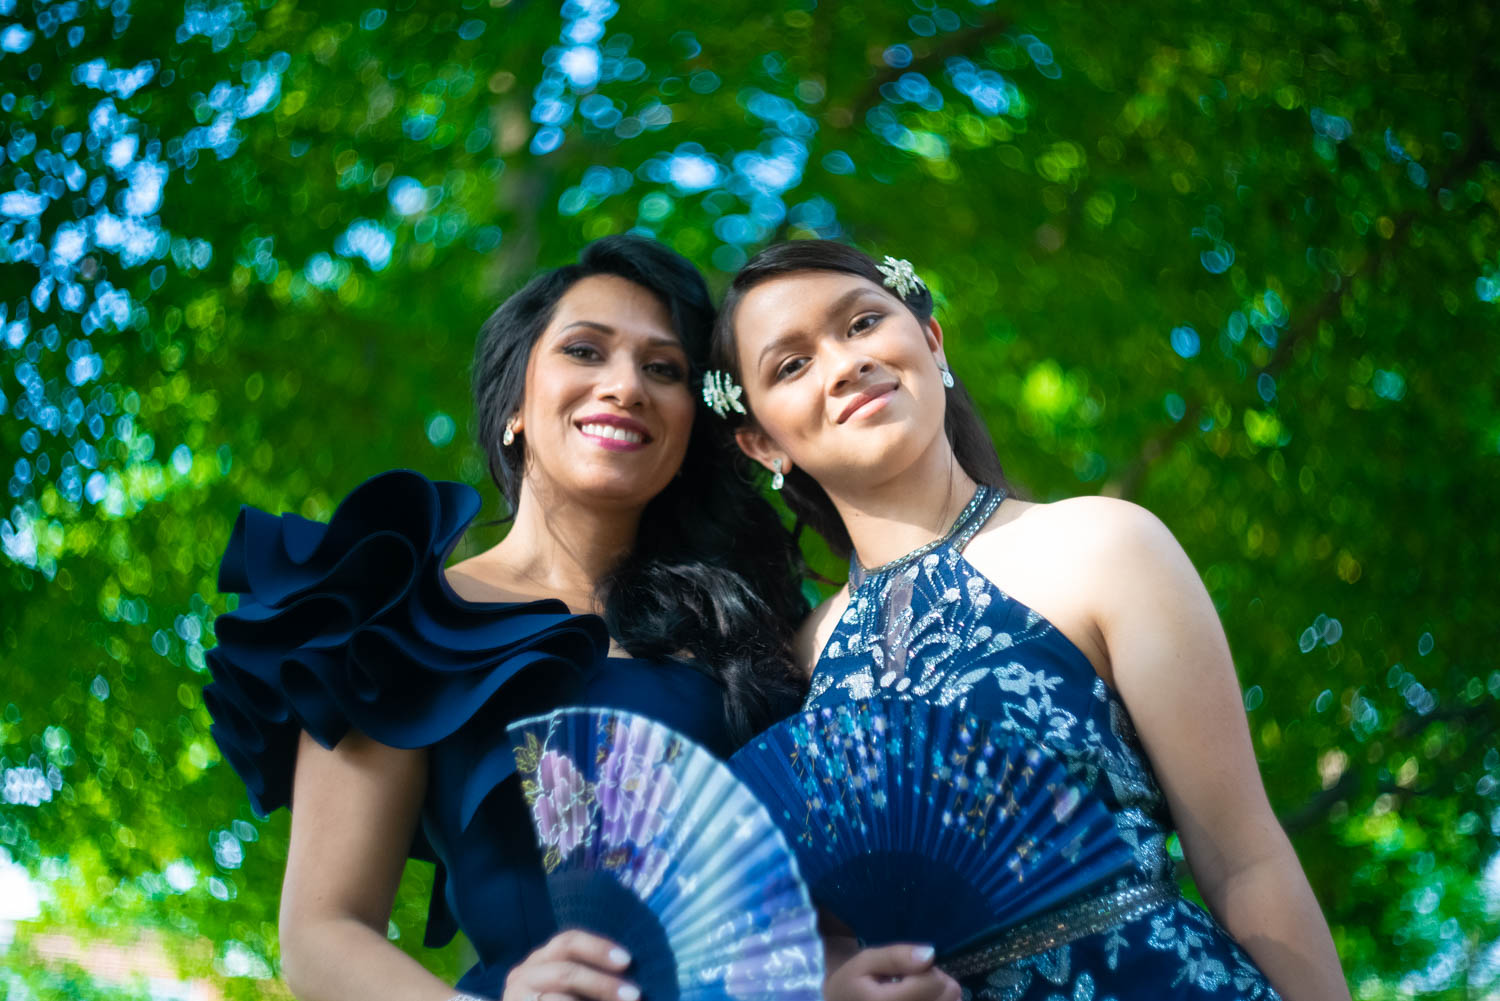 quinceanera+sweet 16+photography+family+mother+daugther+photography-7.jpg